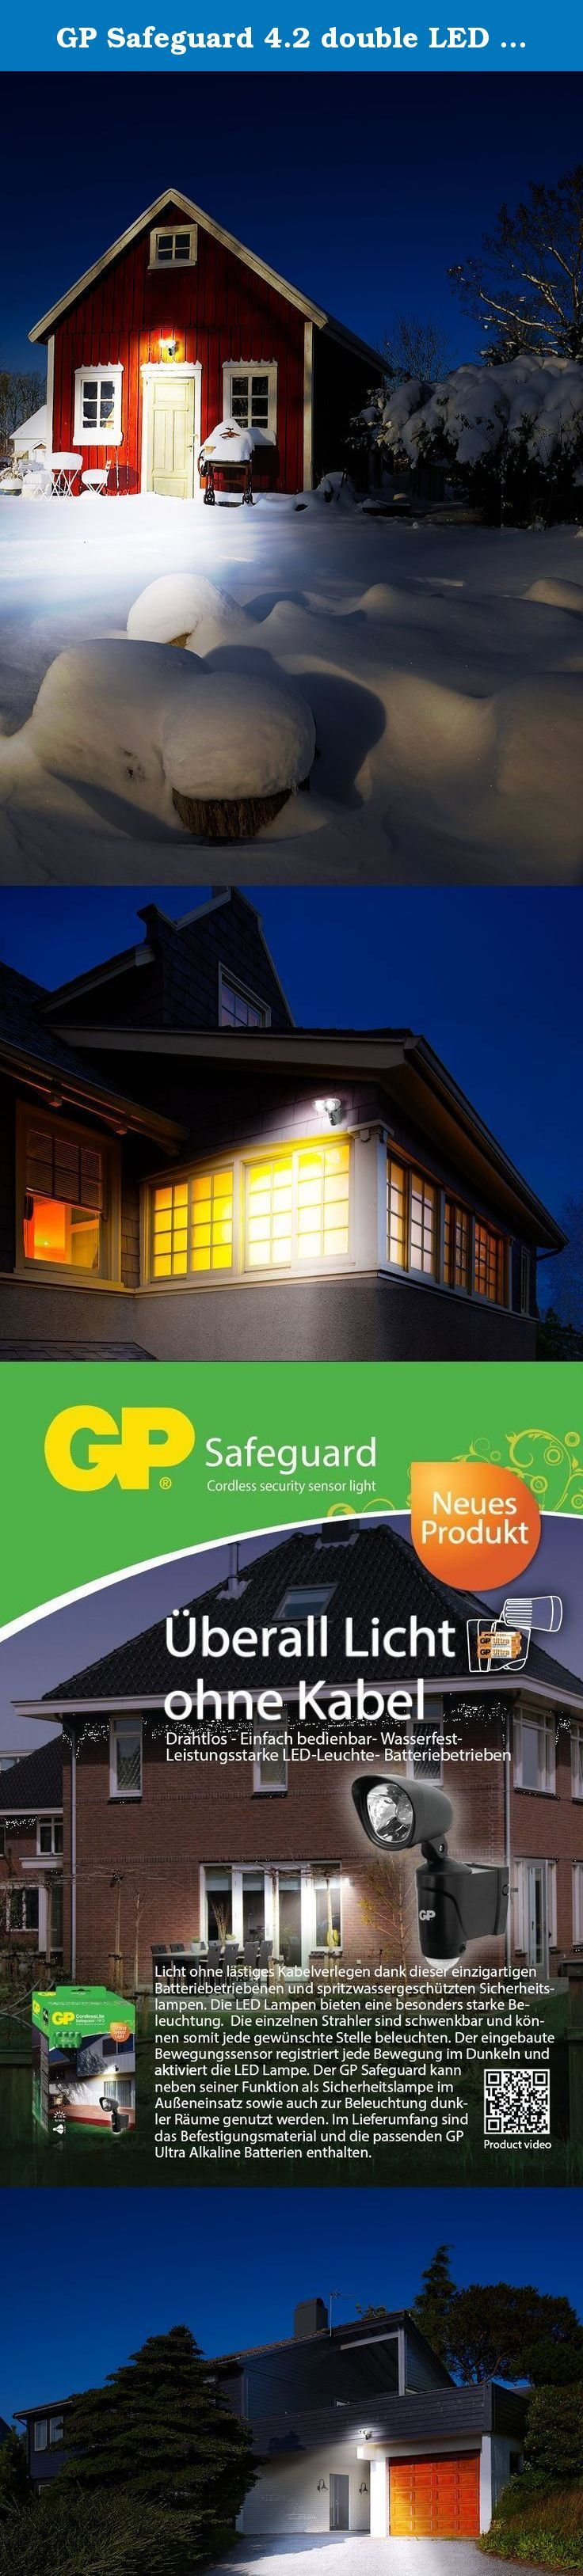 GP Safeguard 4.2 double LED battery light with motion detector [GP-SAFE4]. This is the GP Safeguard 4.2 double LED Battery light with motion detector [GP-SAFE4] Light where it is needed • Wireless (battery powered) • Easy to install • Water-resistant • Switches on automatically if movement is detected in the dark • Simple process for replacing batteries • Light can be adjusted in all directions ...Contact us if you need more help.